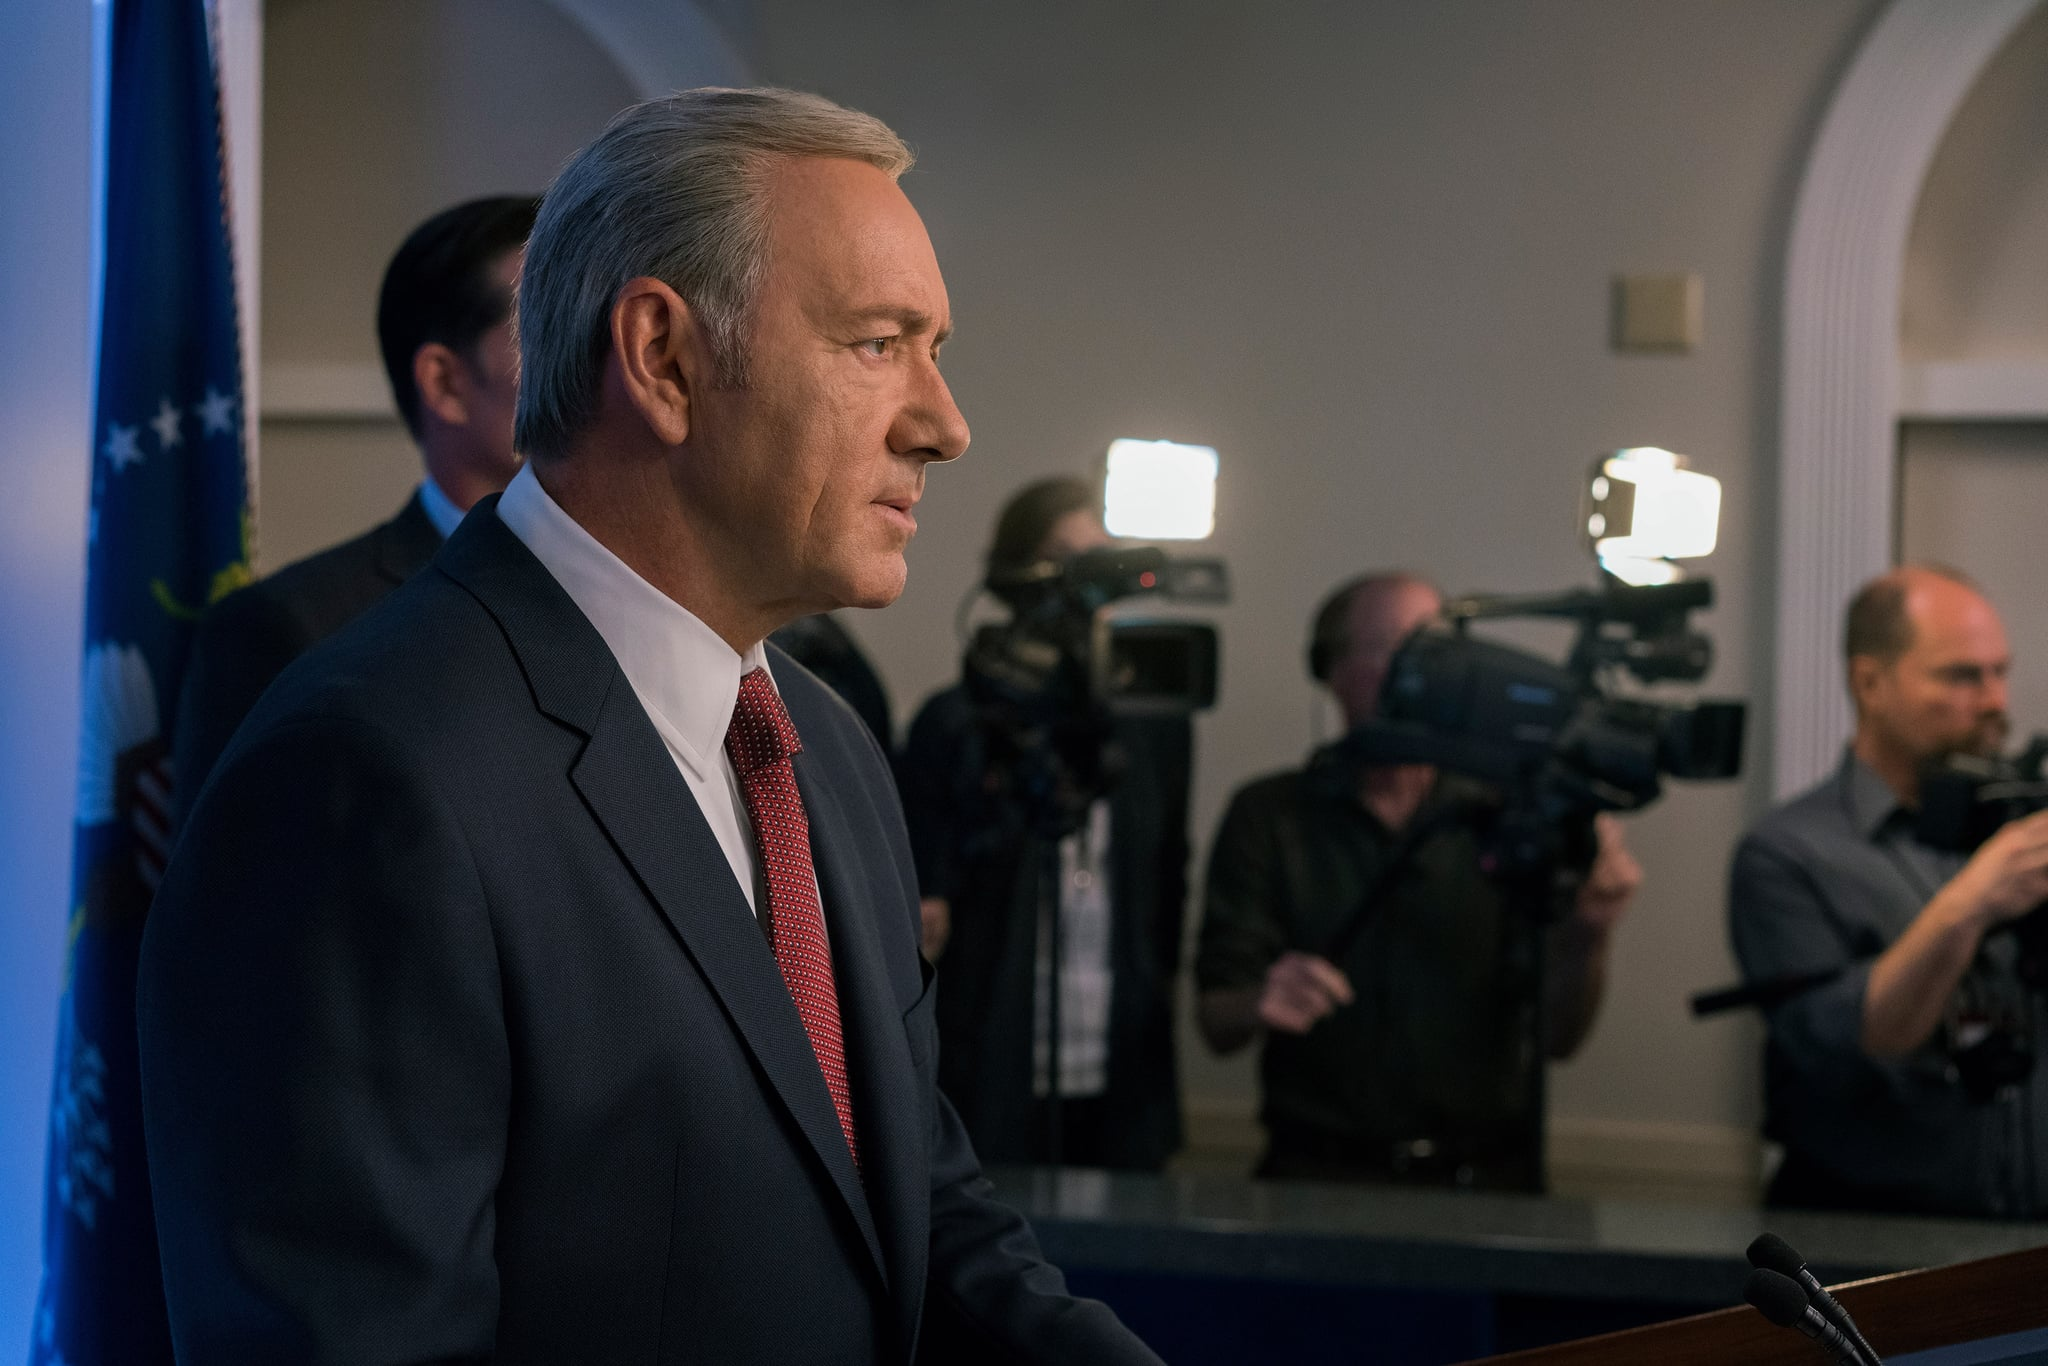 House of Cards Creator Finds Dark Similarity Between Trump and Frank Underwood PopsugarCultureDonald TrumpHouse of Cards Creator on Trump Afghanistan SpeechHouse of Cards Creator Finds Dark Similarity Between Trump and Frank Underwood August 26, 2017 by Ann-Marie Alcántara First Published: August 22, 2017 13 Shares Chat with us on Facebook Messenger. Learn what's trending across POPSUGAR. If there's one person who can see through deceptive speech writing and policy wringing, it might be Beau Willimon, the creator of House of Cards. The man who created the fictional, devious character of Frank Underwood noticed a similarity between him and President Donald Trump during the president's speech on Afghanistan on Aug. 21. Willimon also called out Trump's speech as an attempt to distract the public from the president's comments on the events in Charlottesville, VA, as well as the ongoing Russia investigation. Willimon took issue with Trump's new commitment to send more troops to Afghanistan. In a series of tweets, - 웹